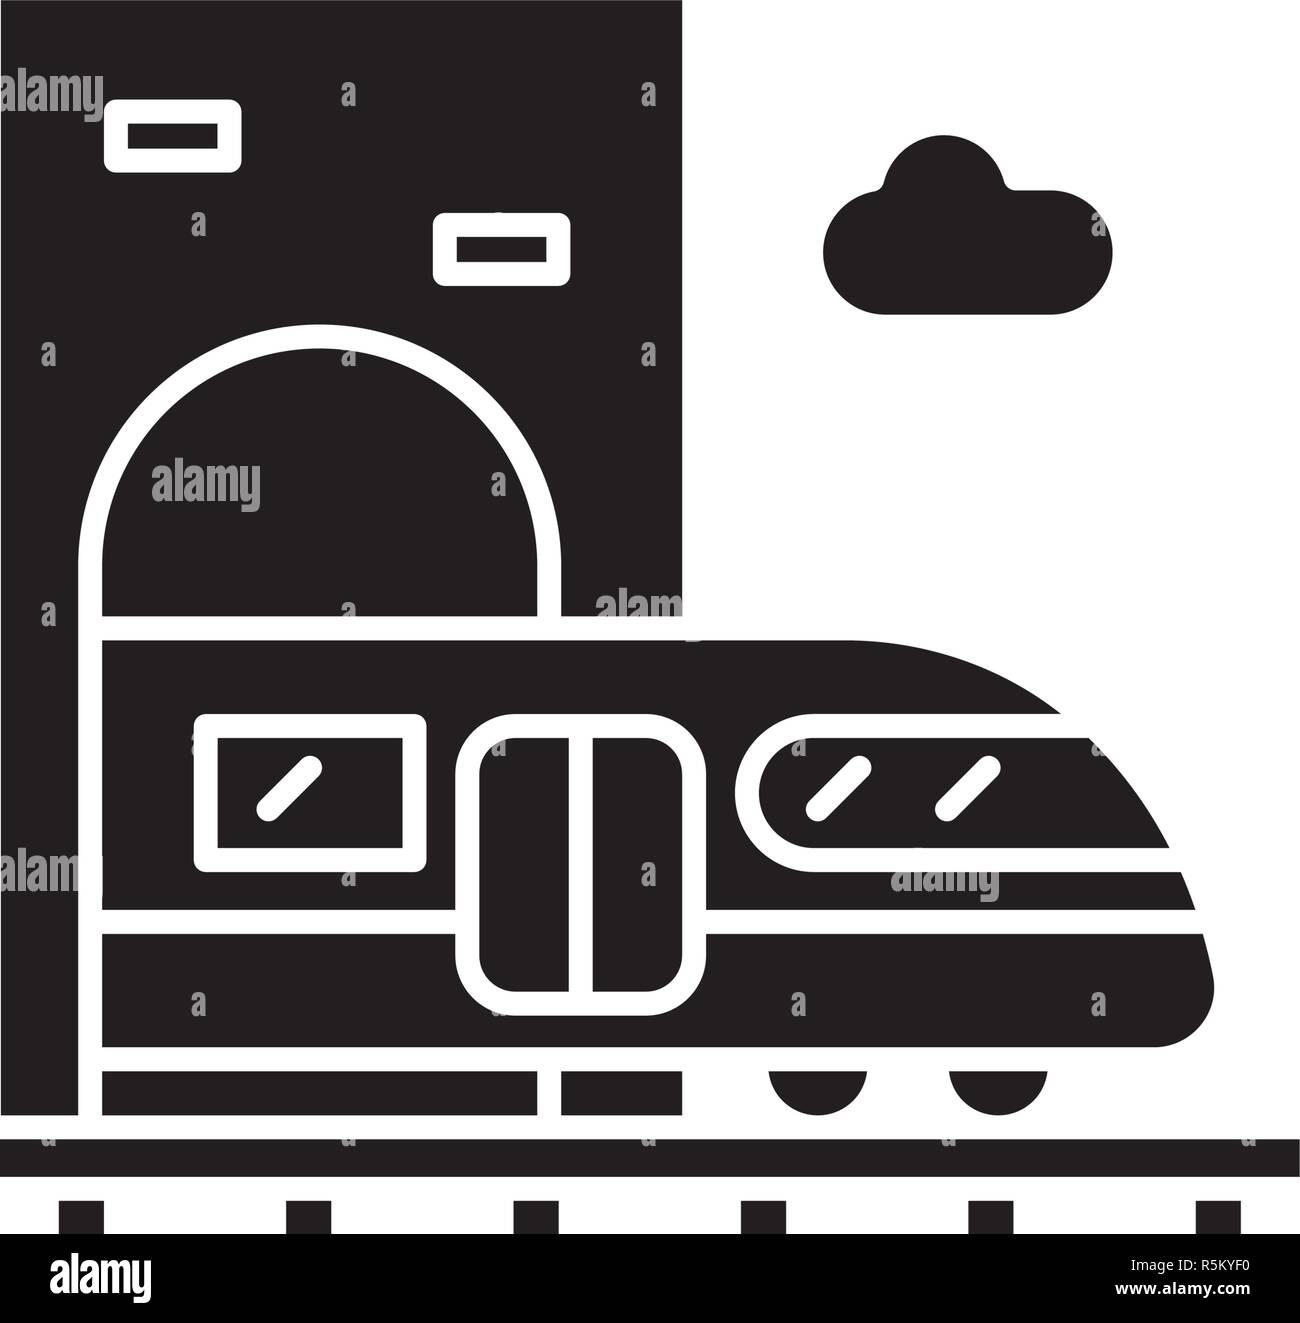 Train station black icon, vector sign on isolated background. Train station concept symbol, illustration  - Stock Vector